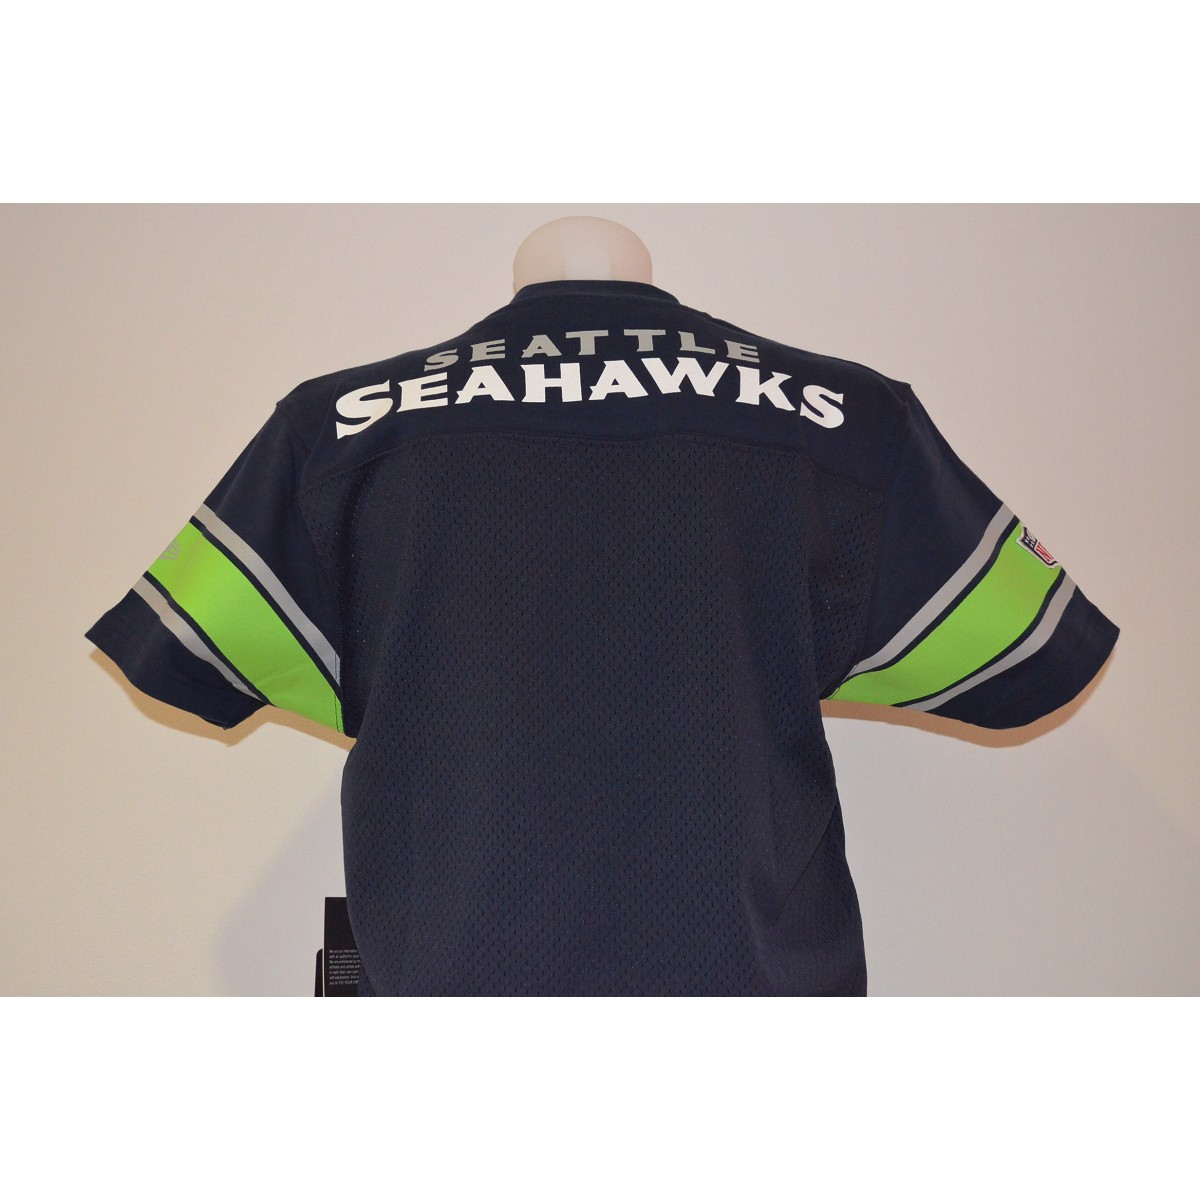 Jersey Nfl New Era Supporter Tee Seattle Seahawks Jerseys